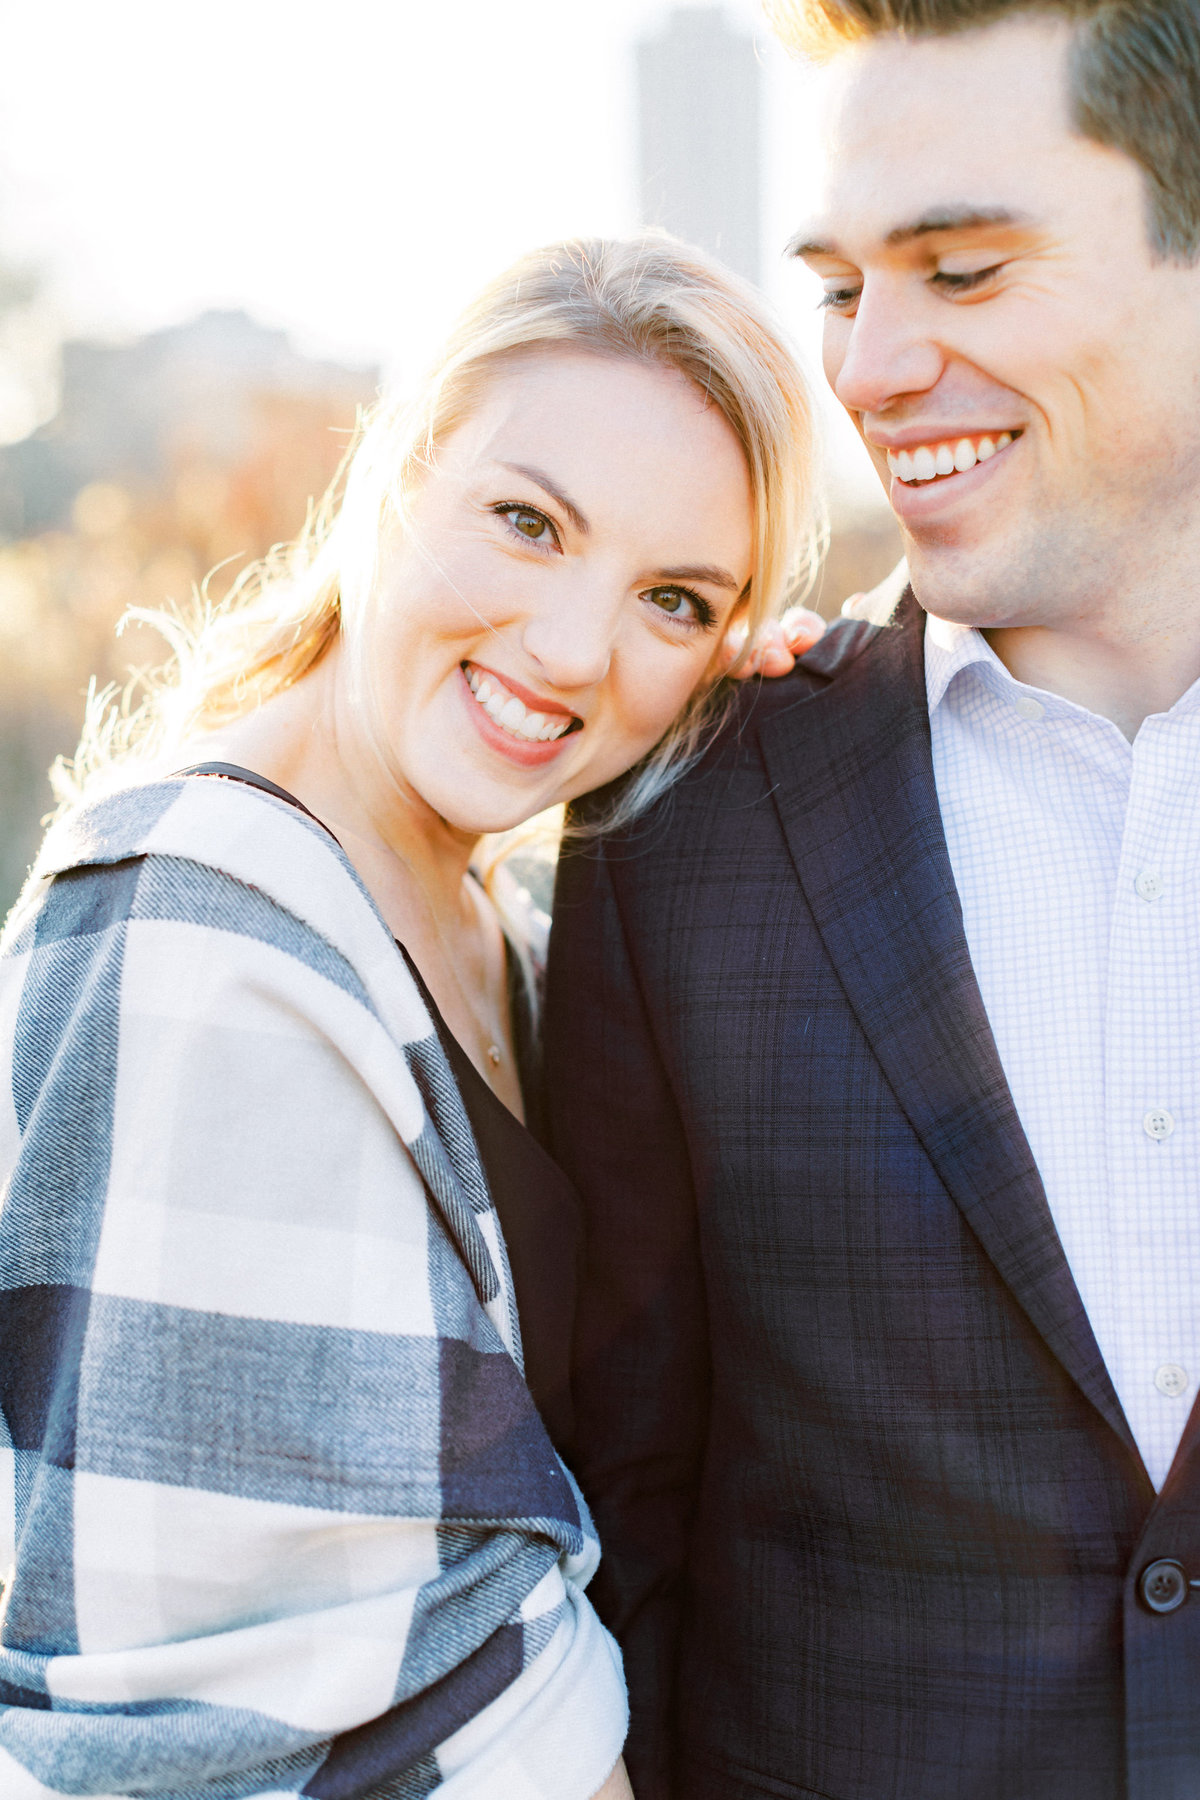 TiffaneyChildsPhotography-ChicagoWeddingPhotographer-AnneMarie+Connor-LincolnParkNatureBoardwalkEngagementSession-160